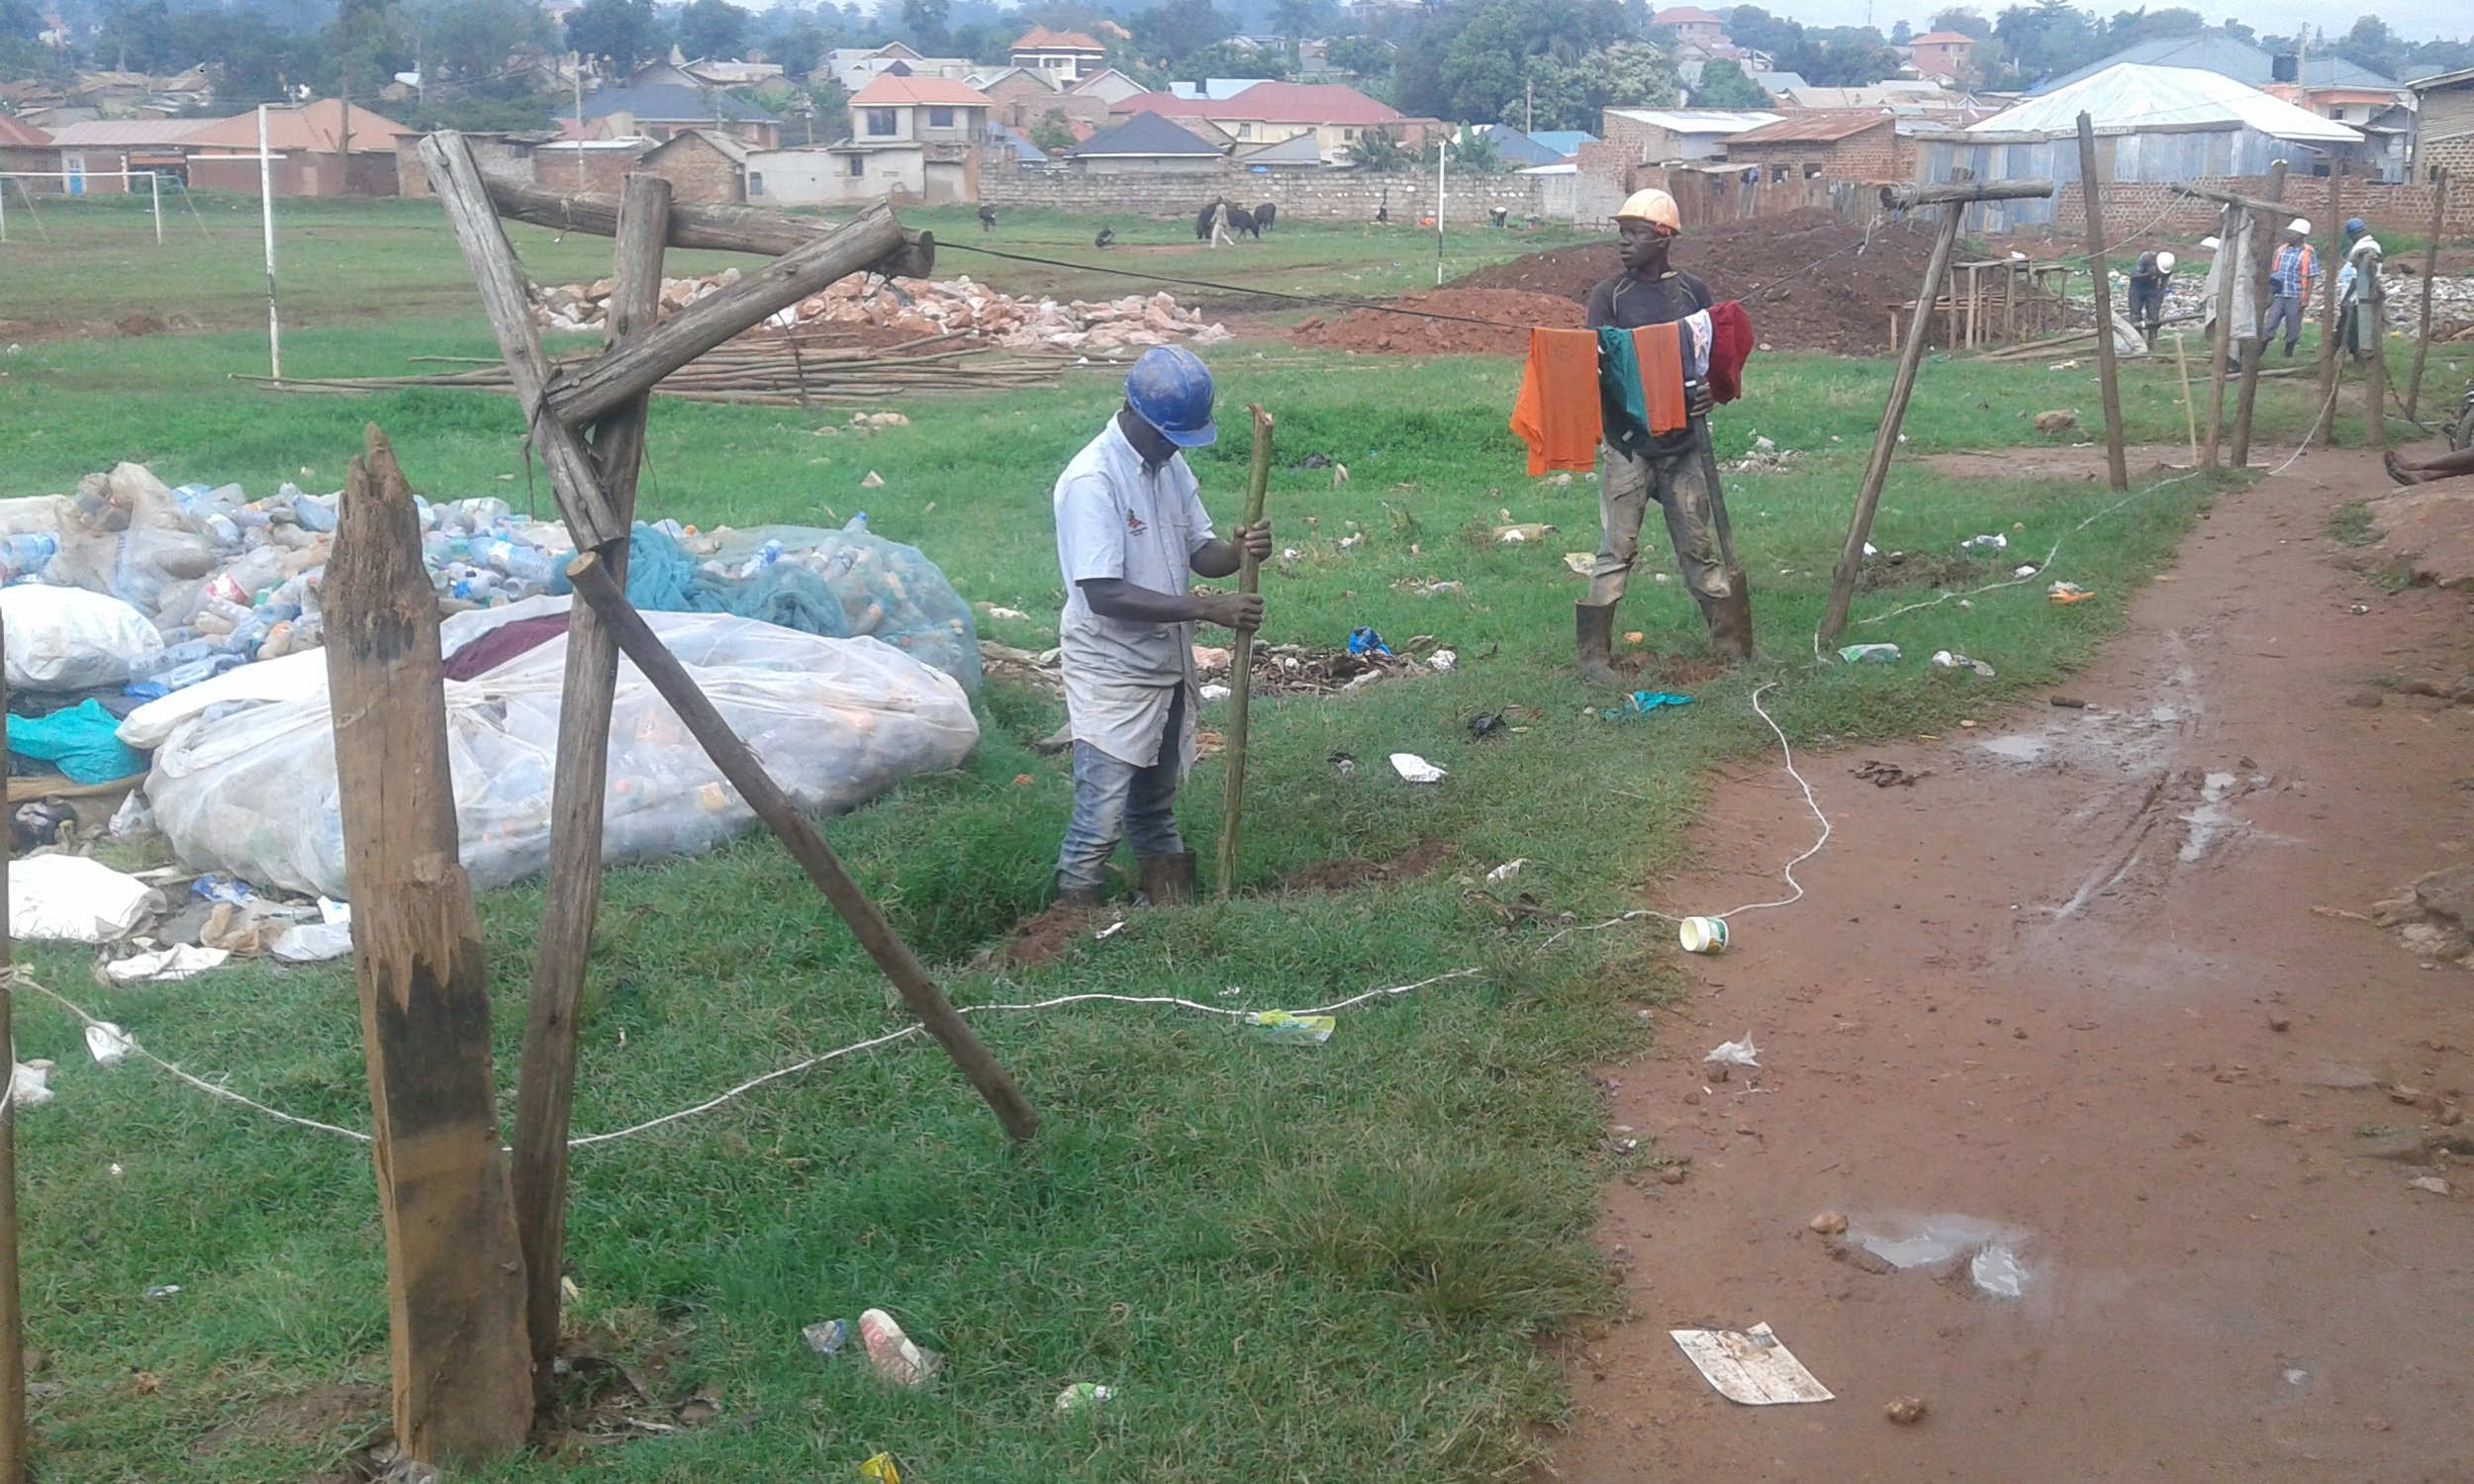 Community members work to clean up garbage and build a safe walkway. Credit: UN-Habitat